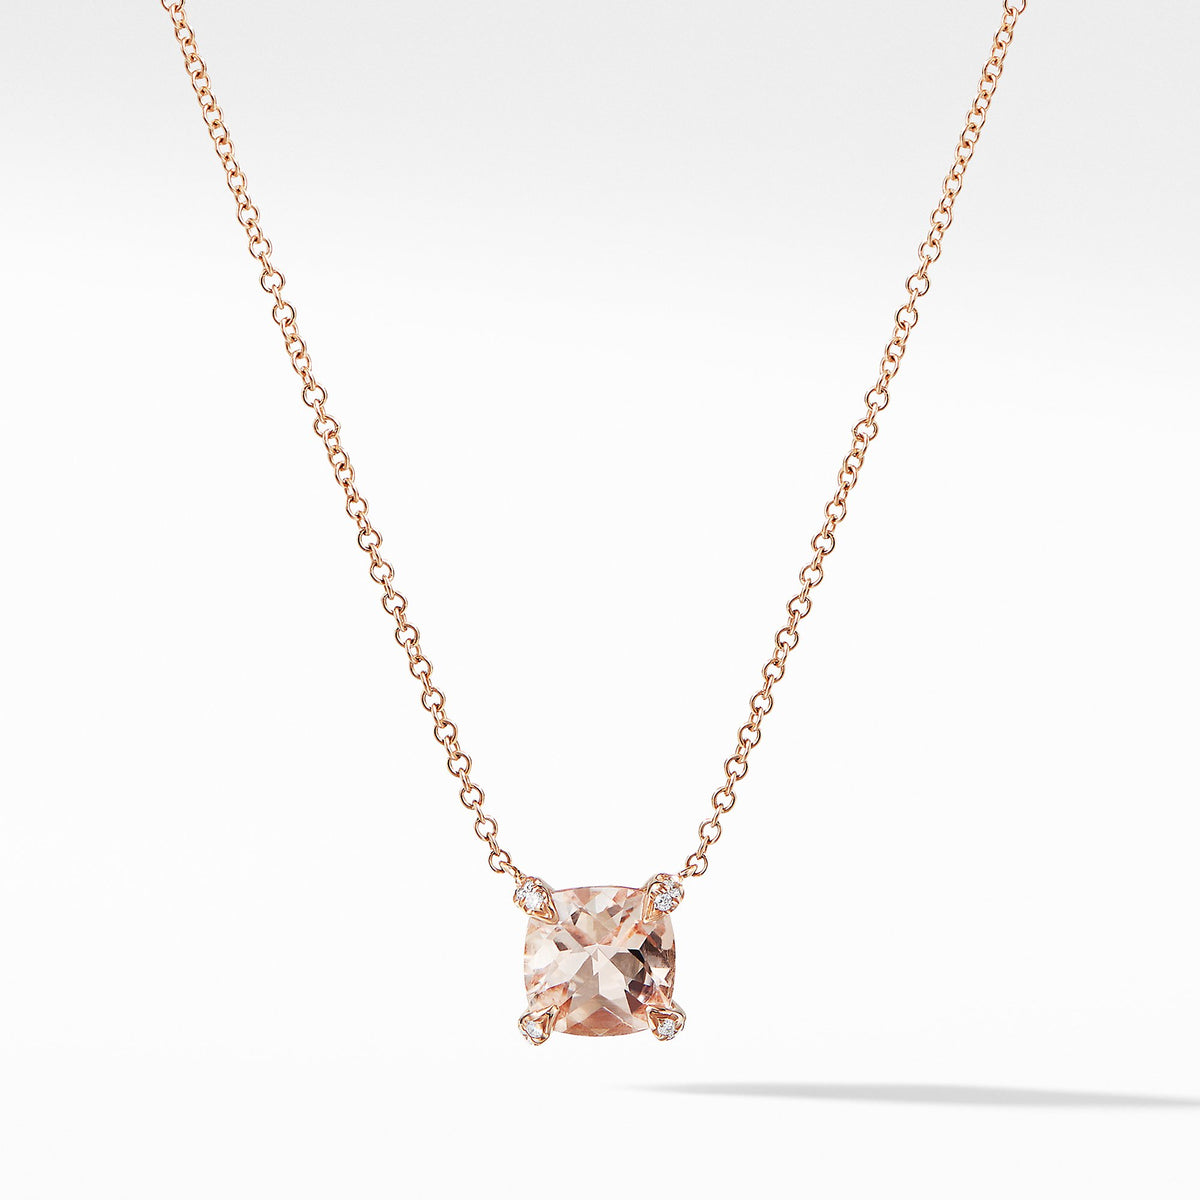 Chatelaine Pendant Necklace with Diamonds in 18K Rose Gold with Morganite